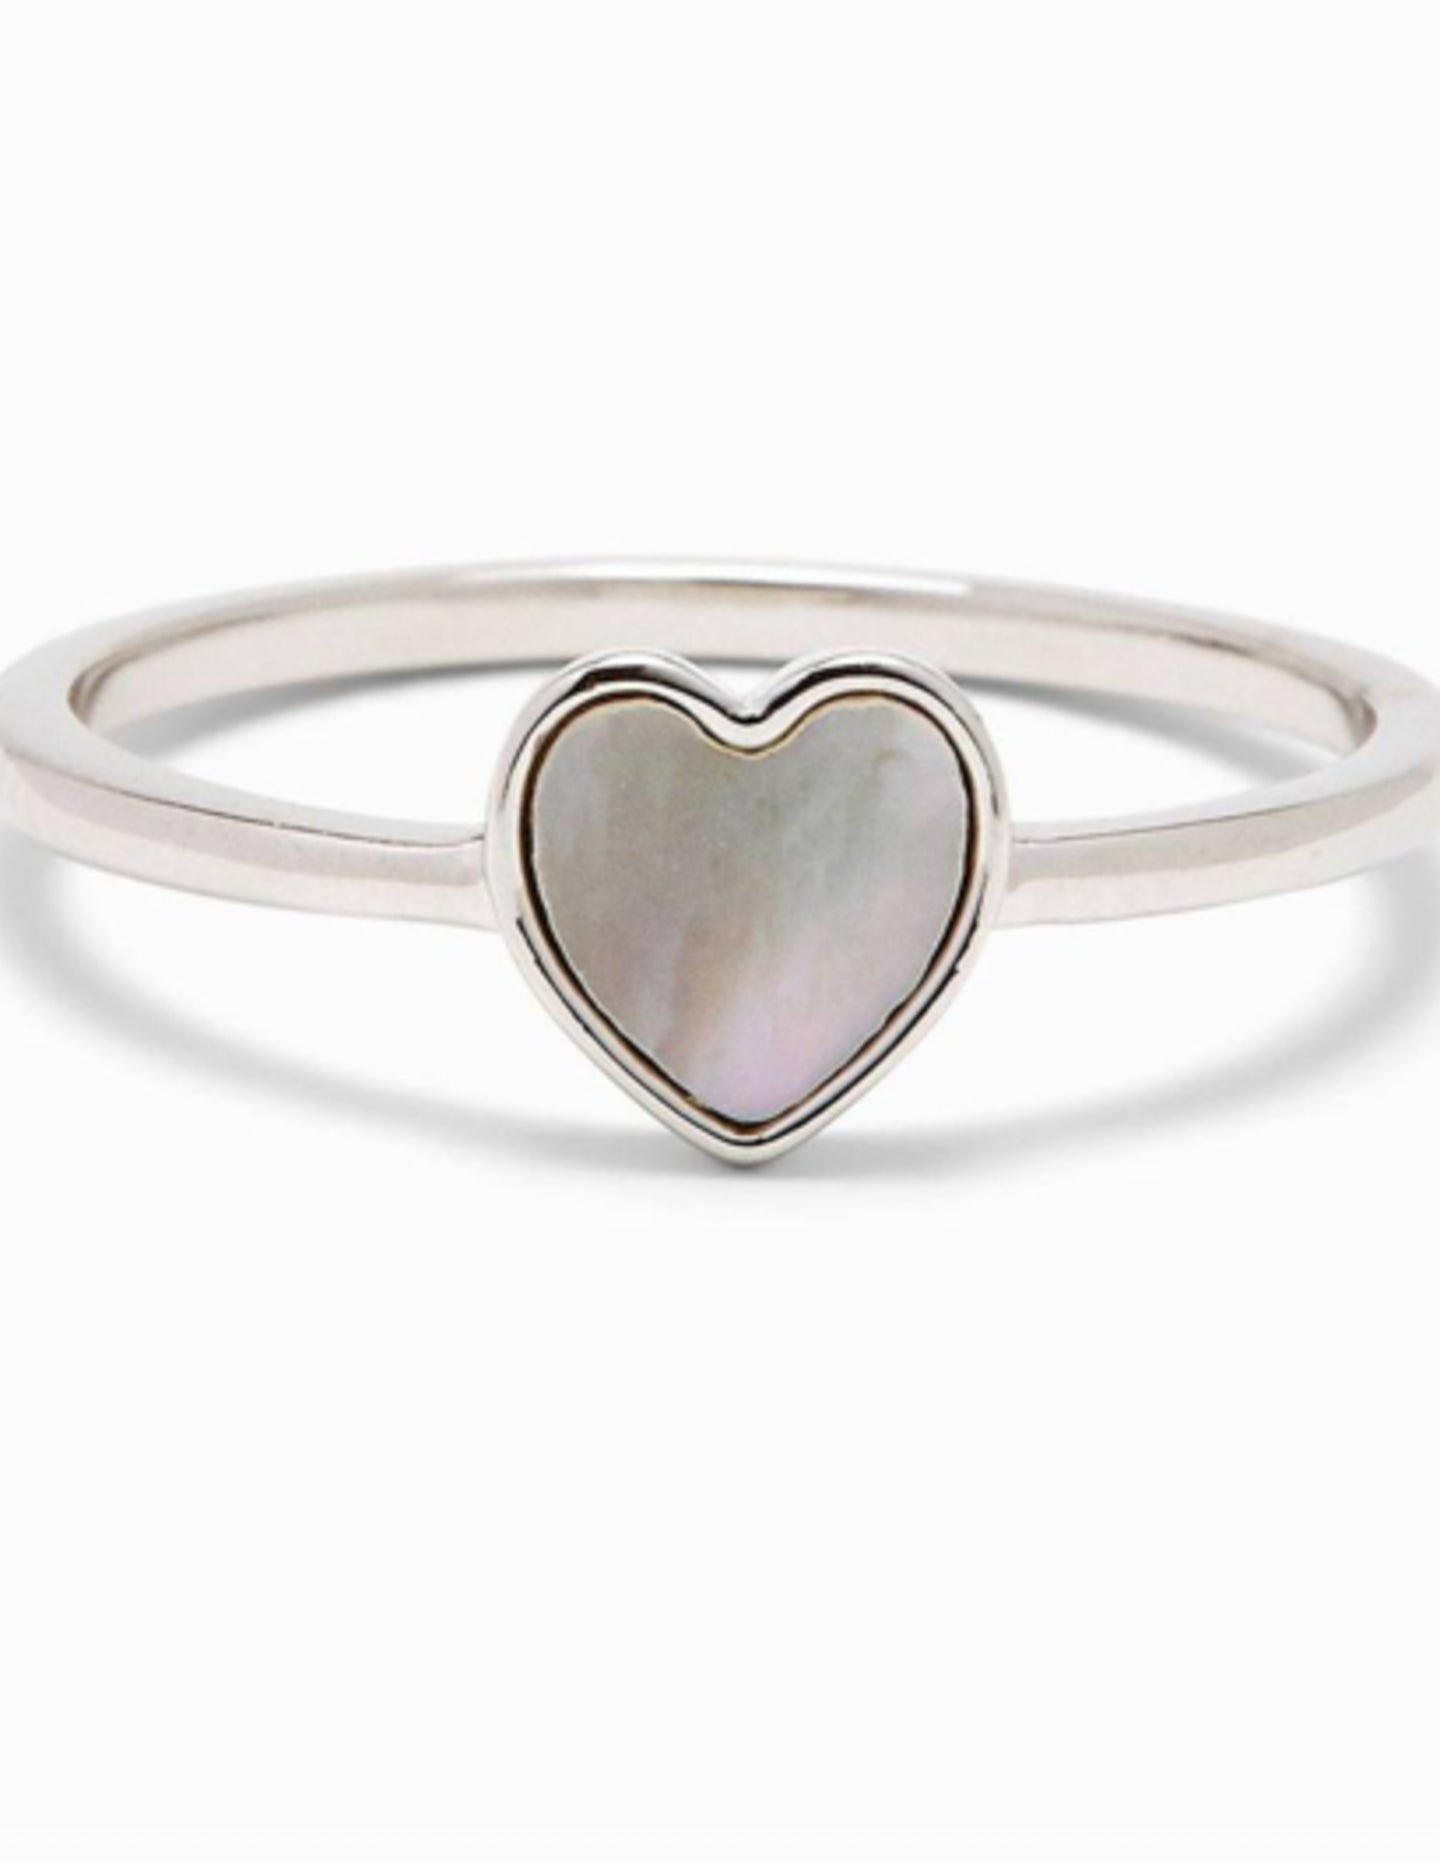 Pura Vida Heart of Pearl Silver Ring